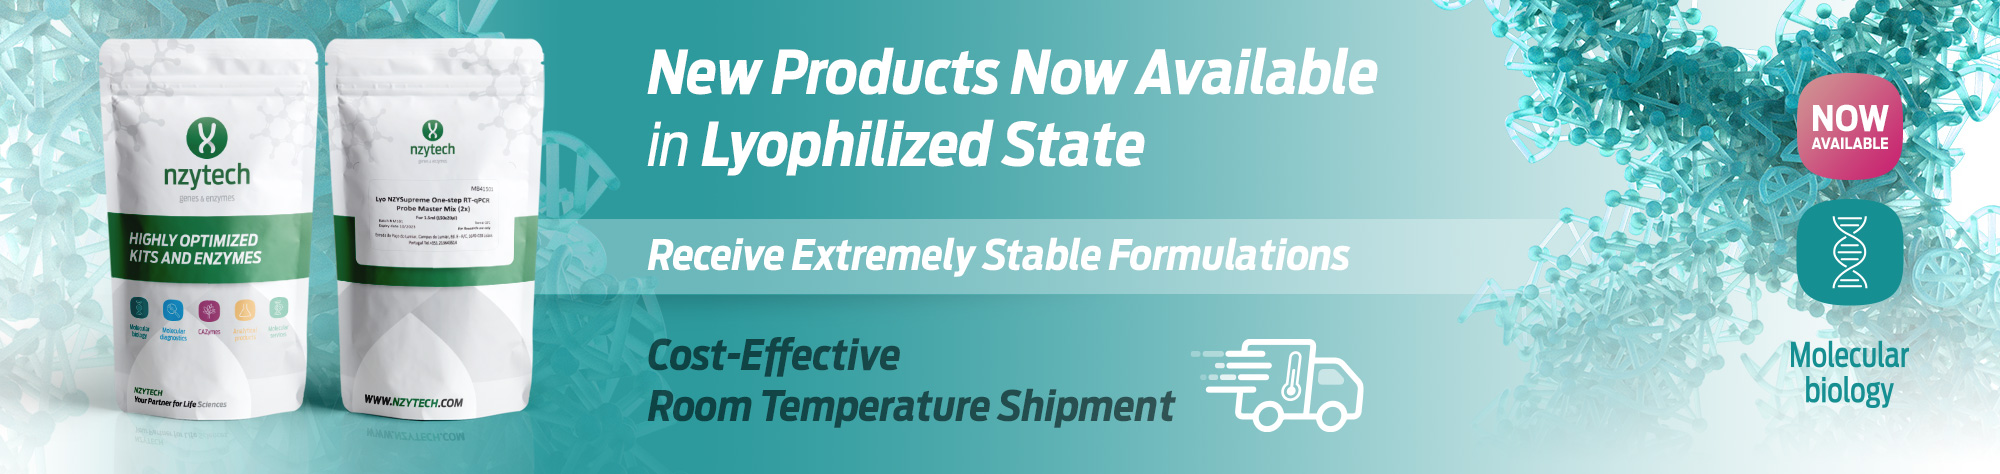 New lyophilized products available